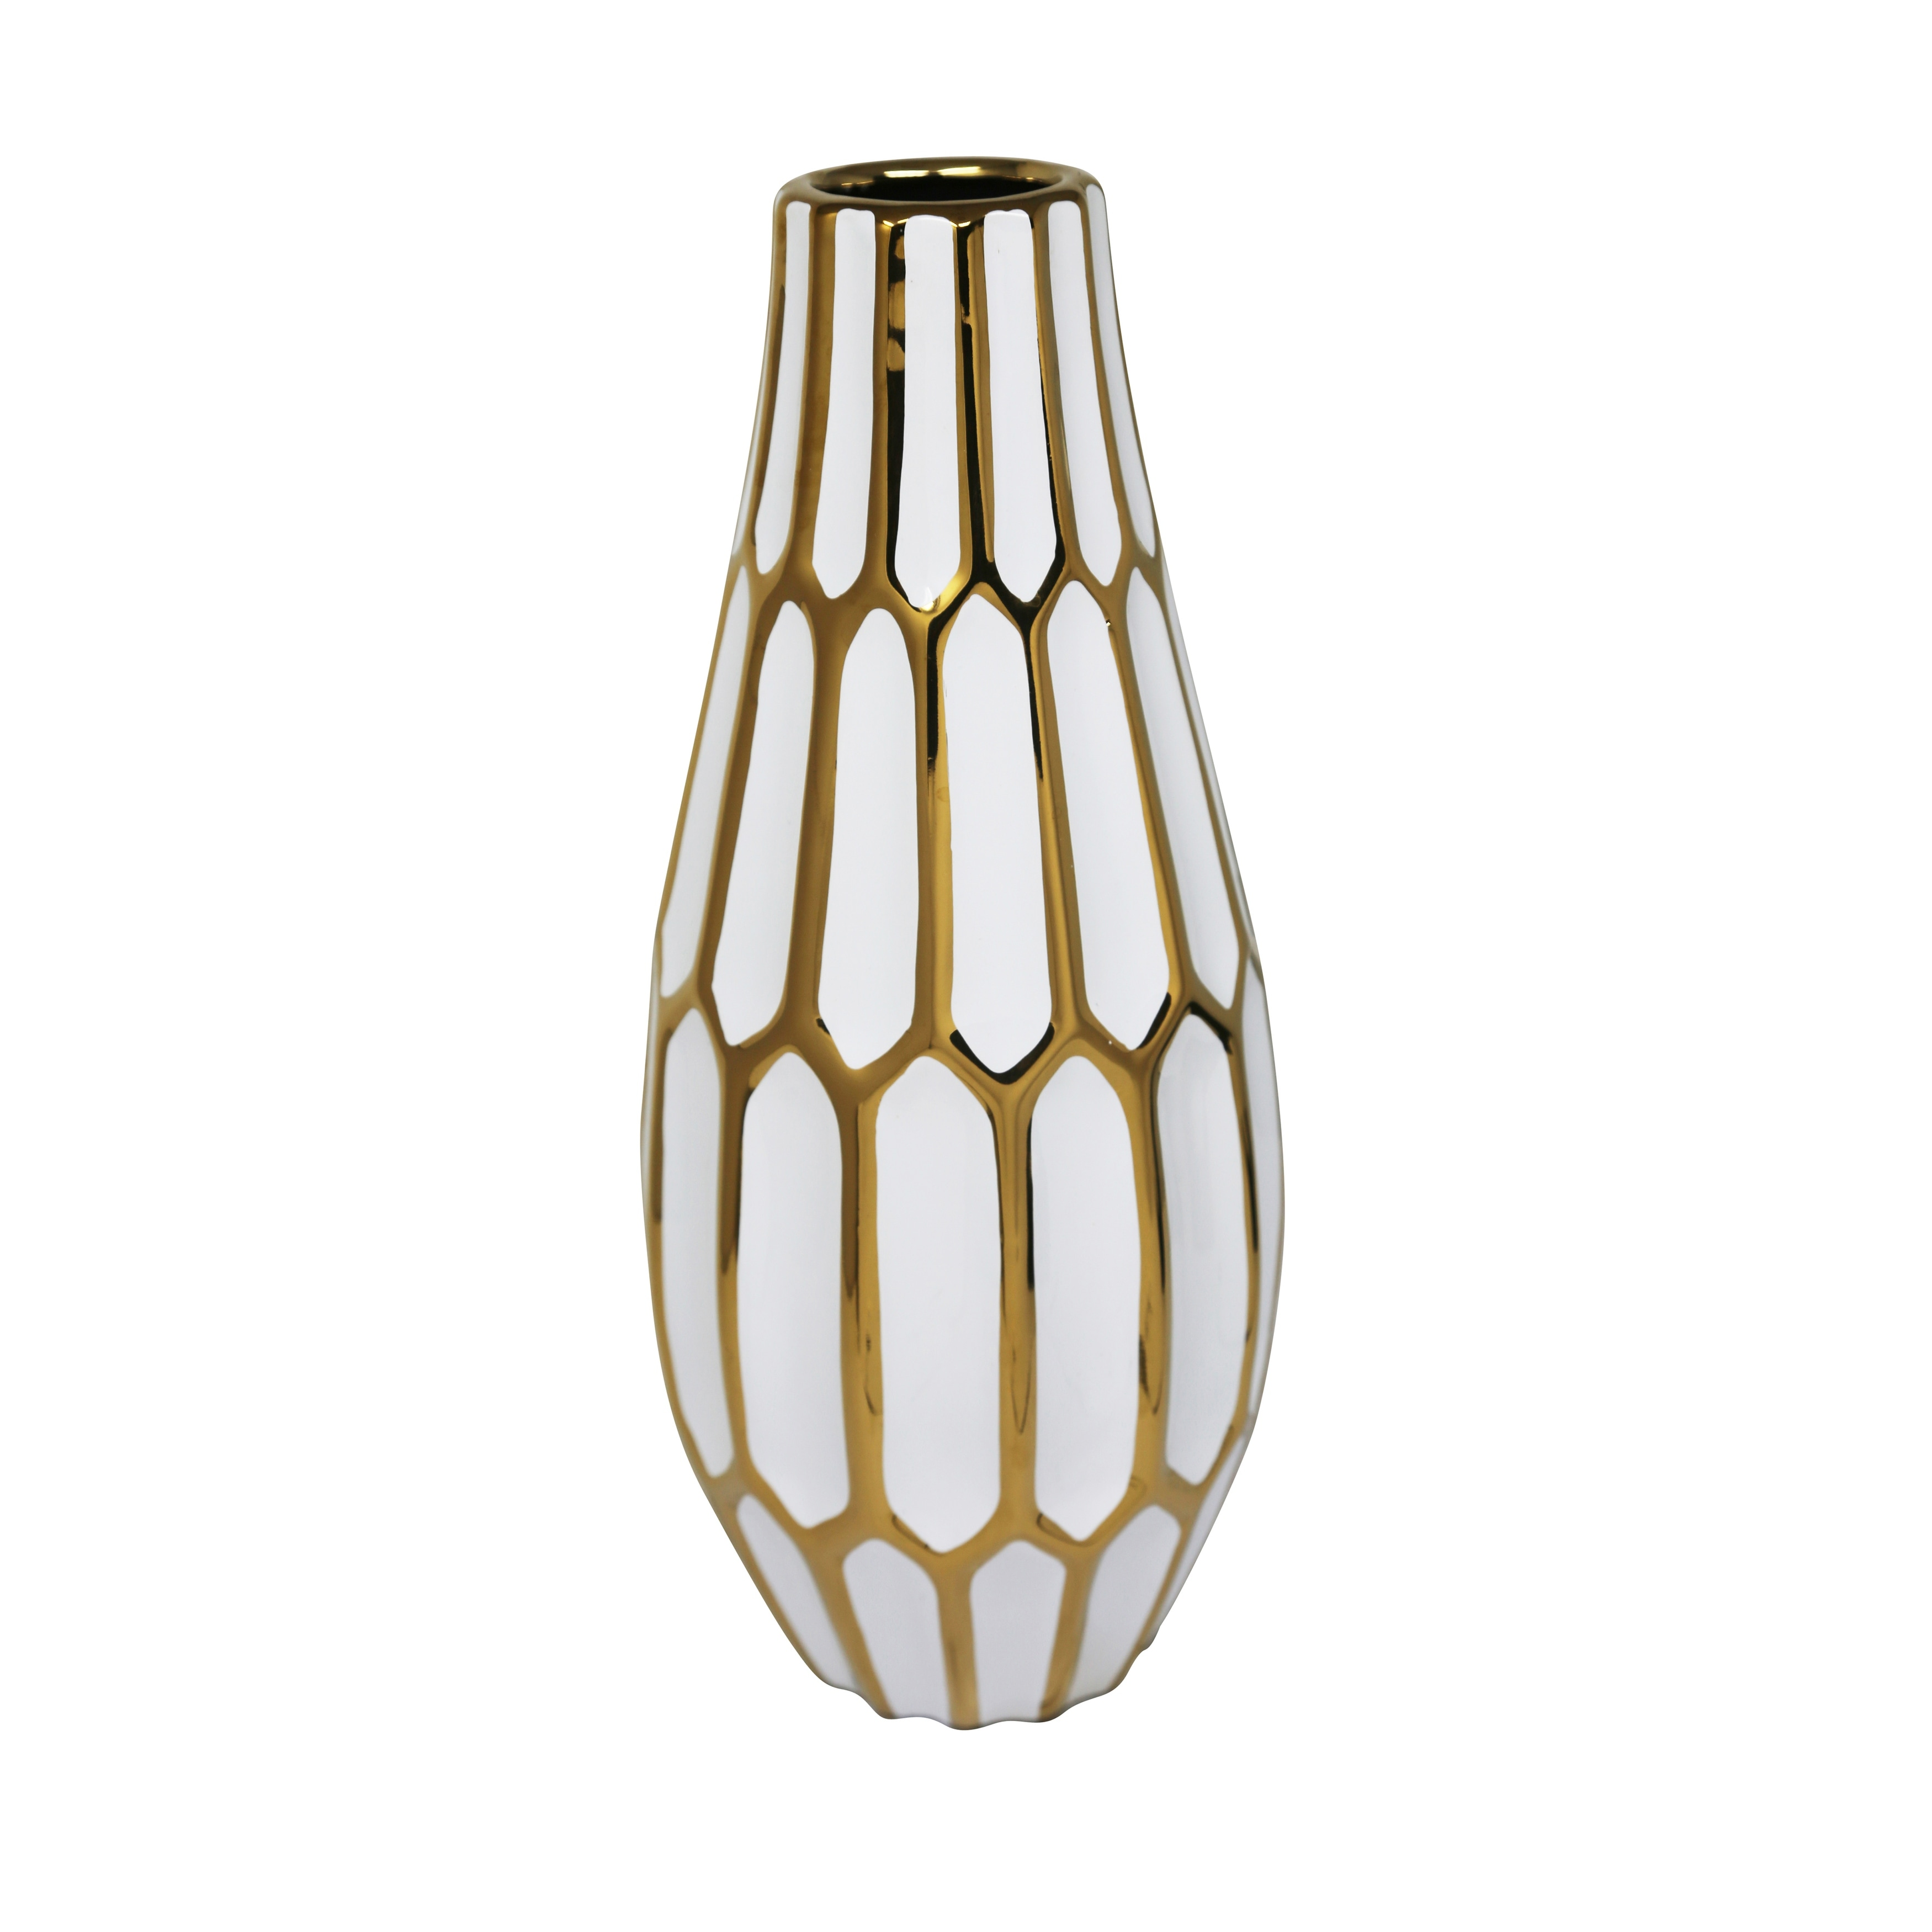 Ceramic Convex Shaped Table Vase with Geometric Bud Design, White and Gold